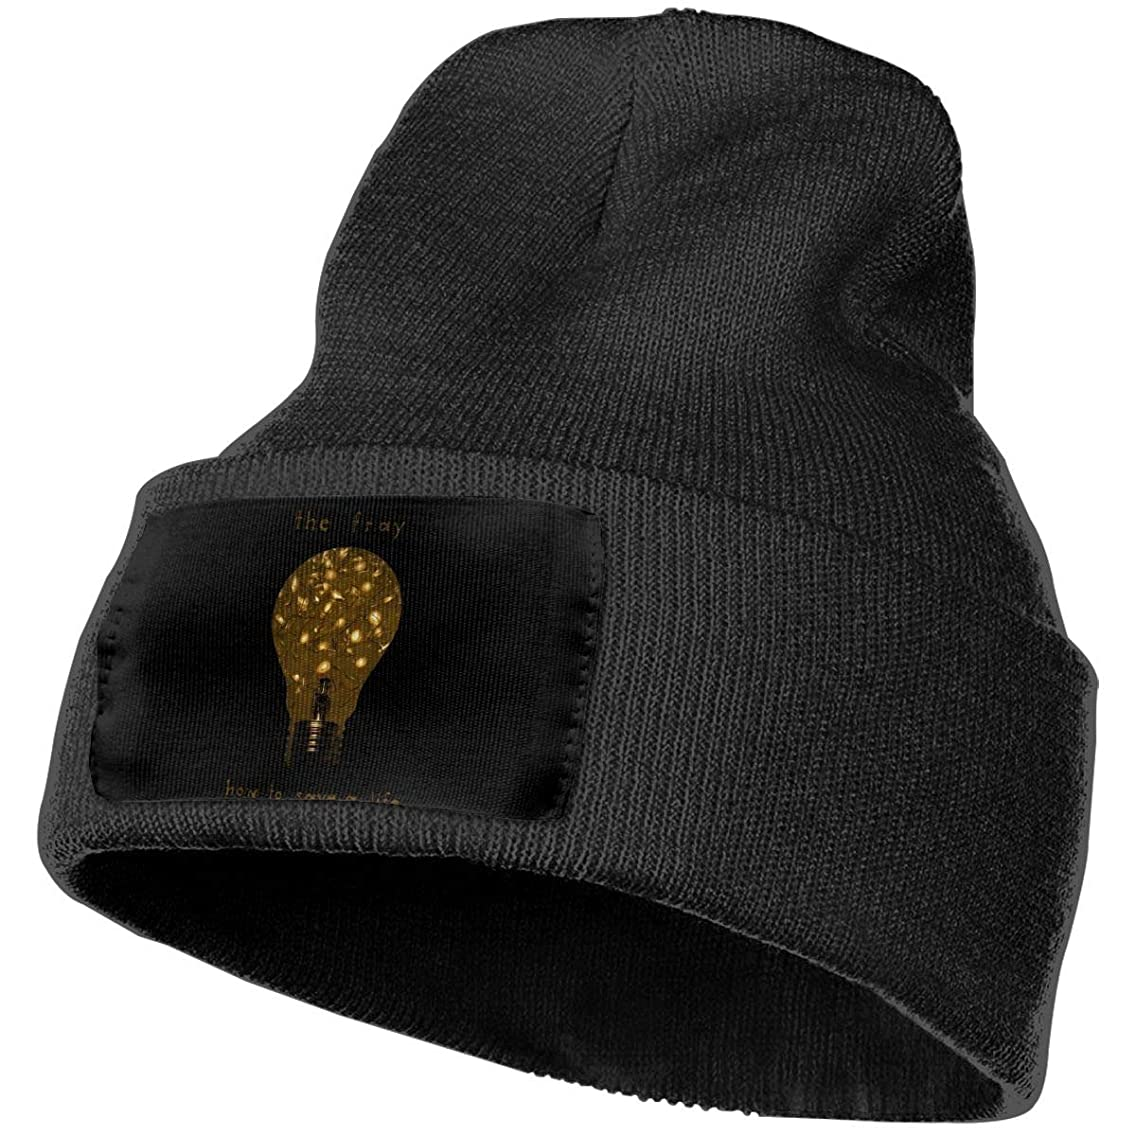 KennedyF The Fray How to Save A Life Skull Hats Cap Cuffed Plain Skull Knit Hat Cap Black